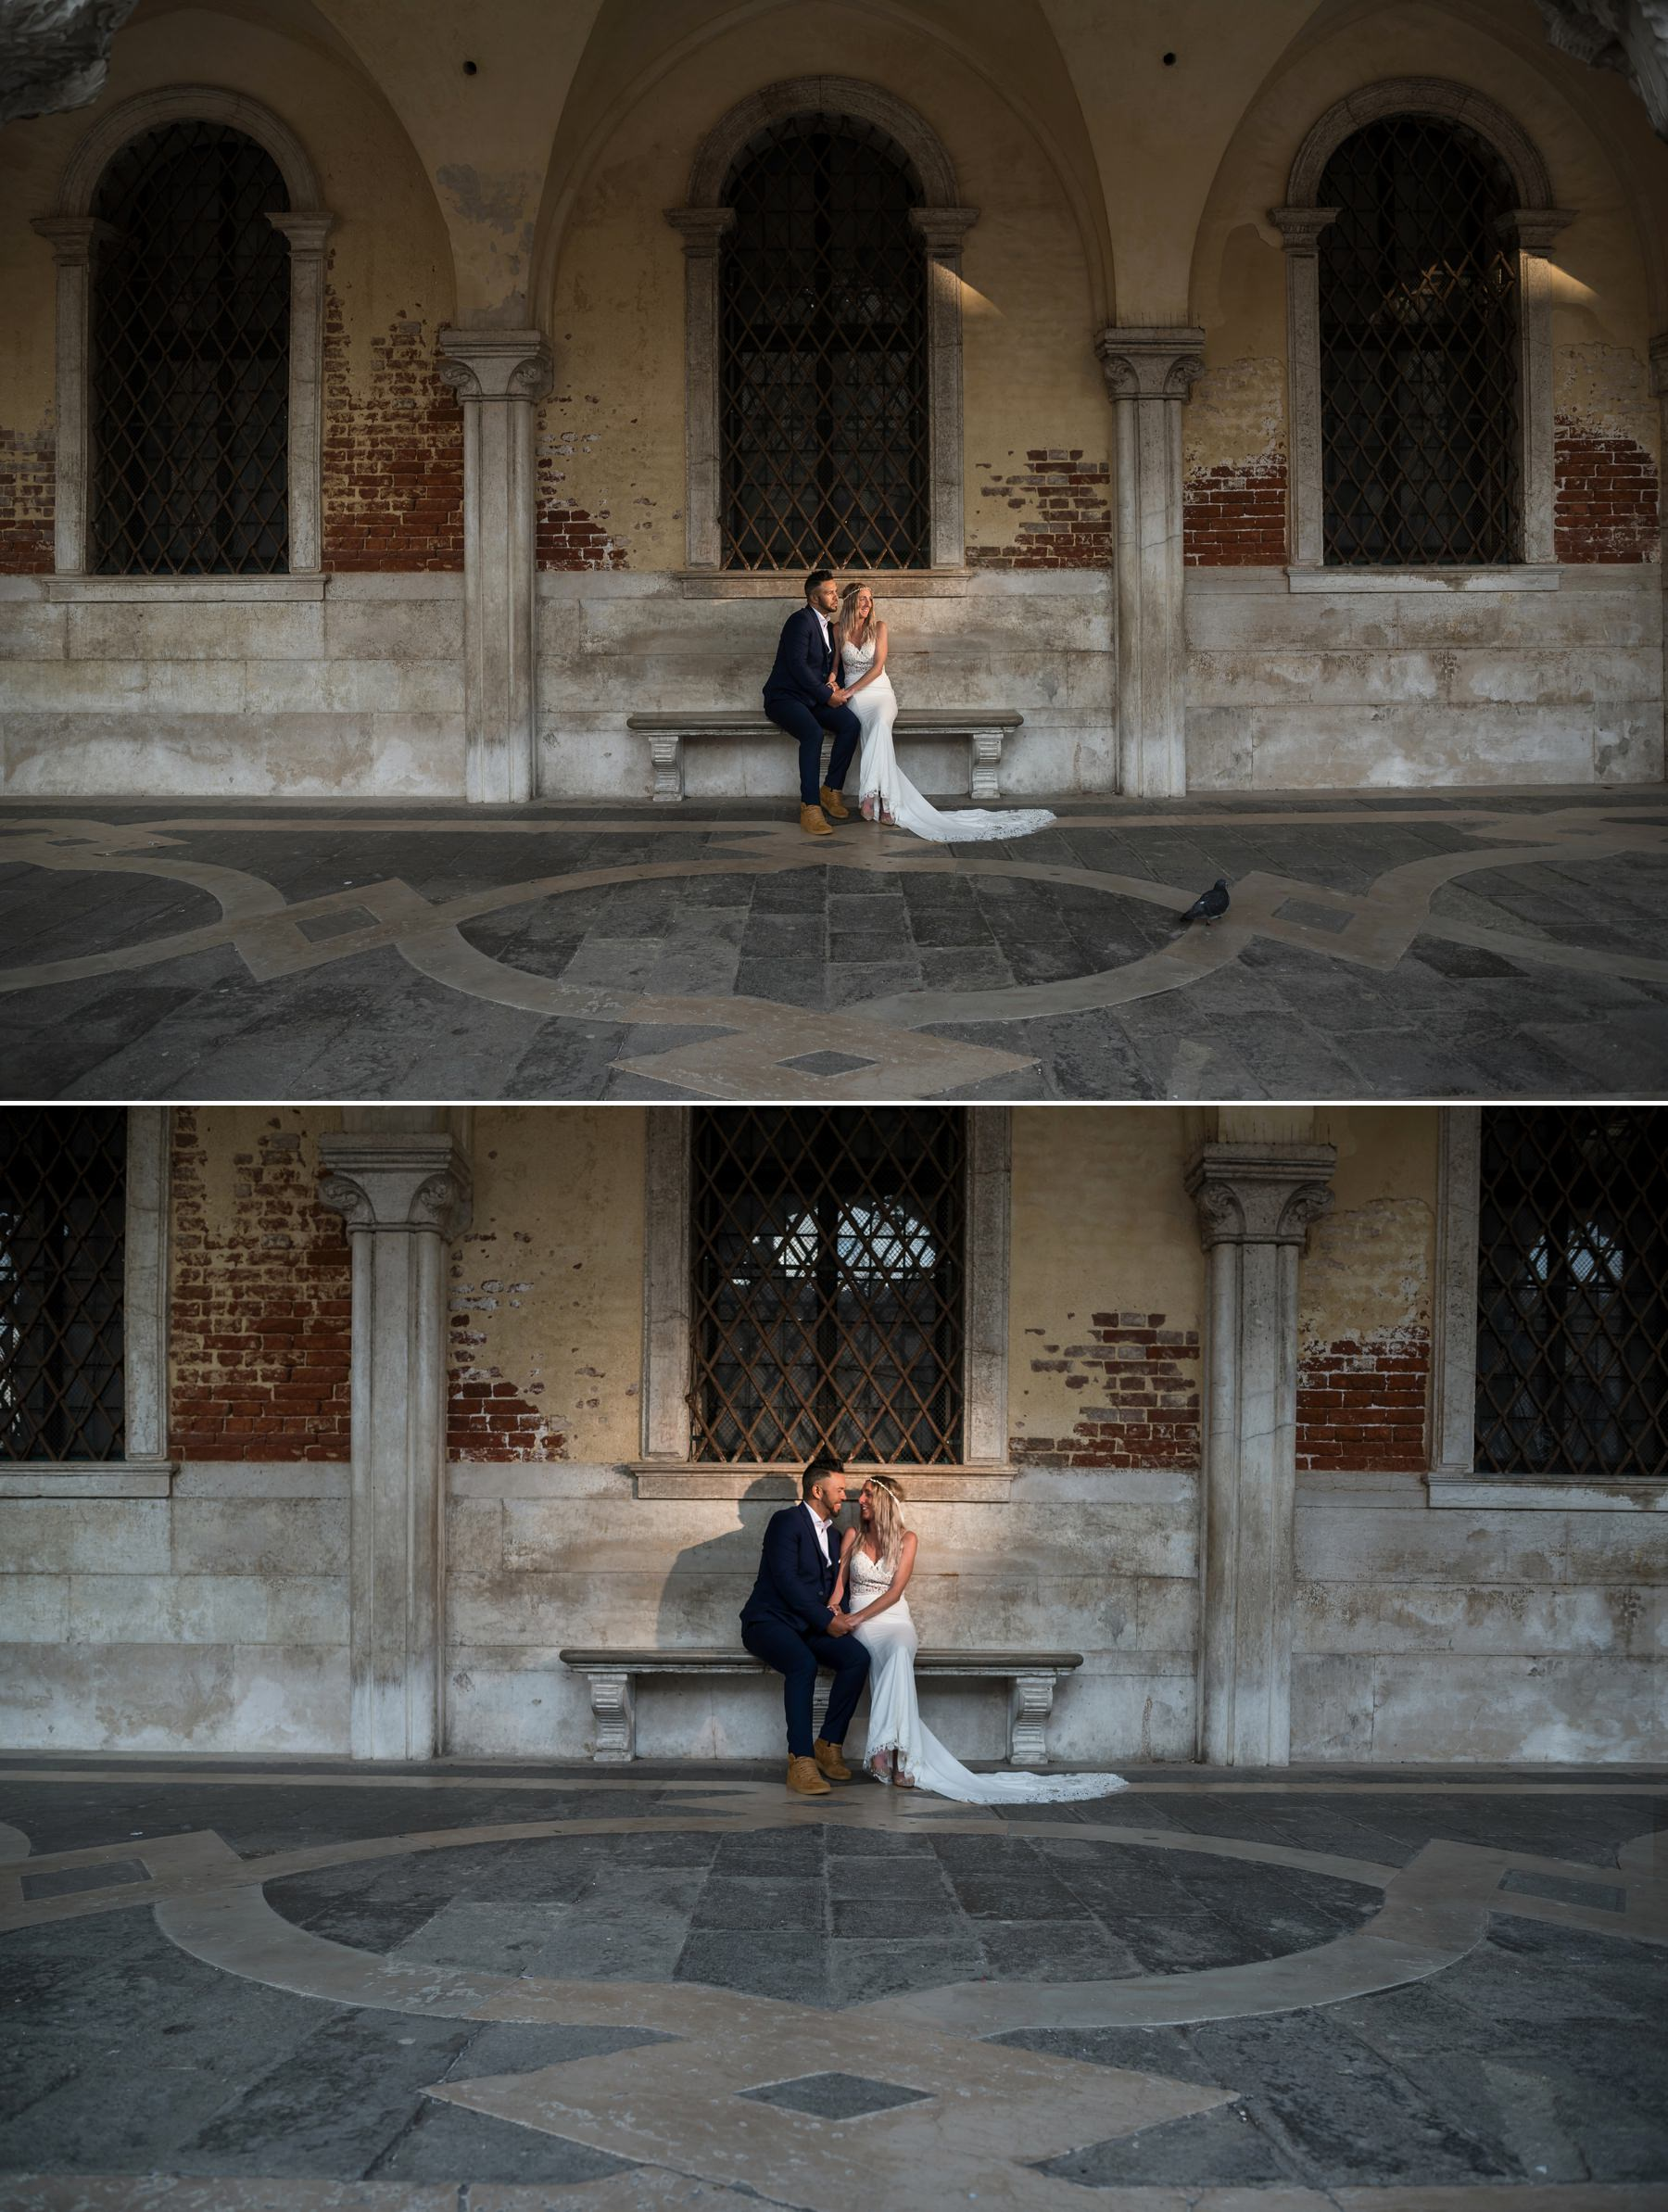 Palazzo Cavalli Venice bride and groom in front of doges palace venice